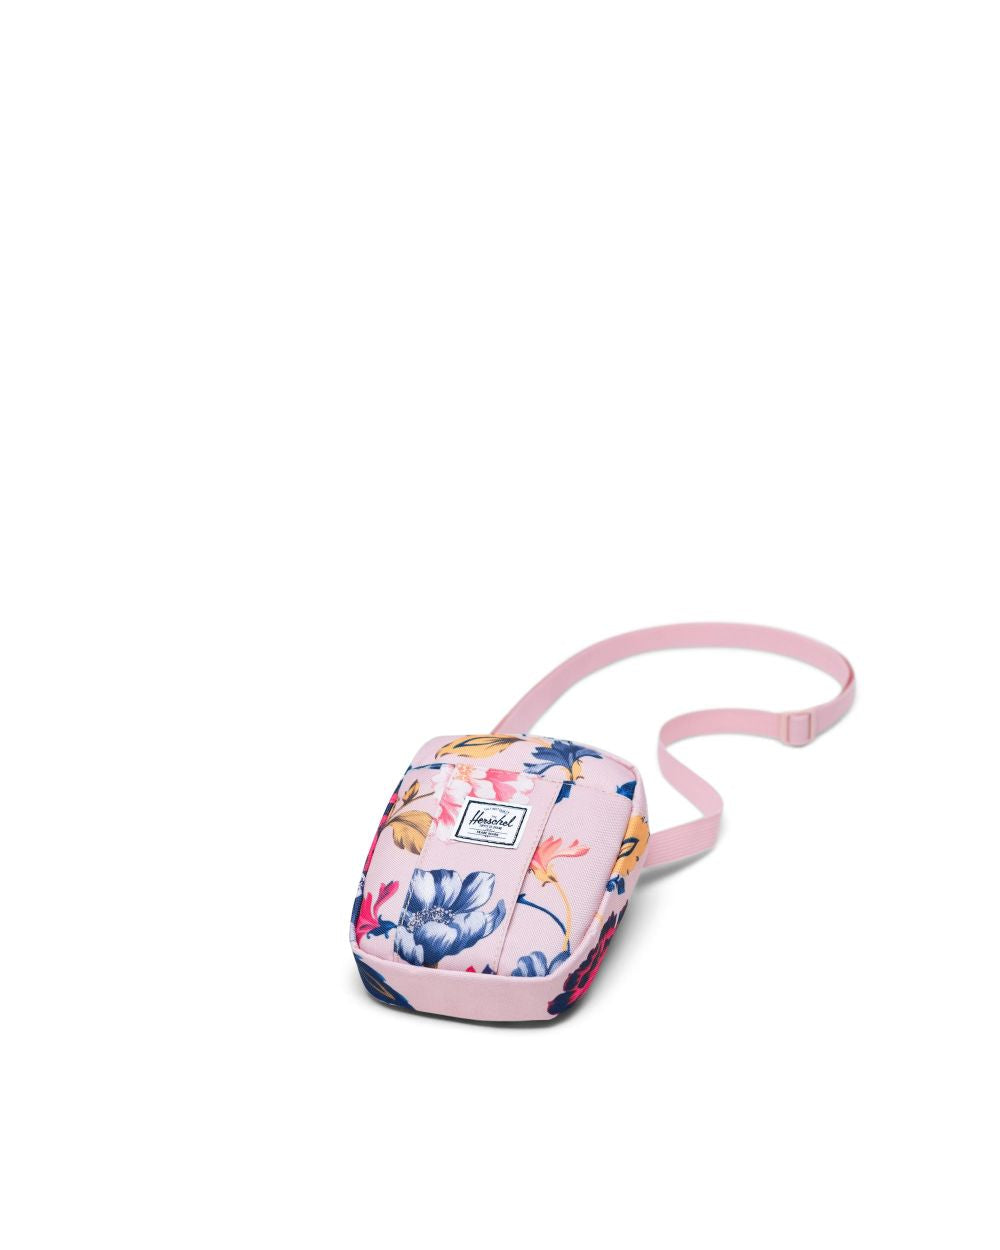 CRUZ CROSSBODY - WINTER FLORA